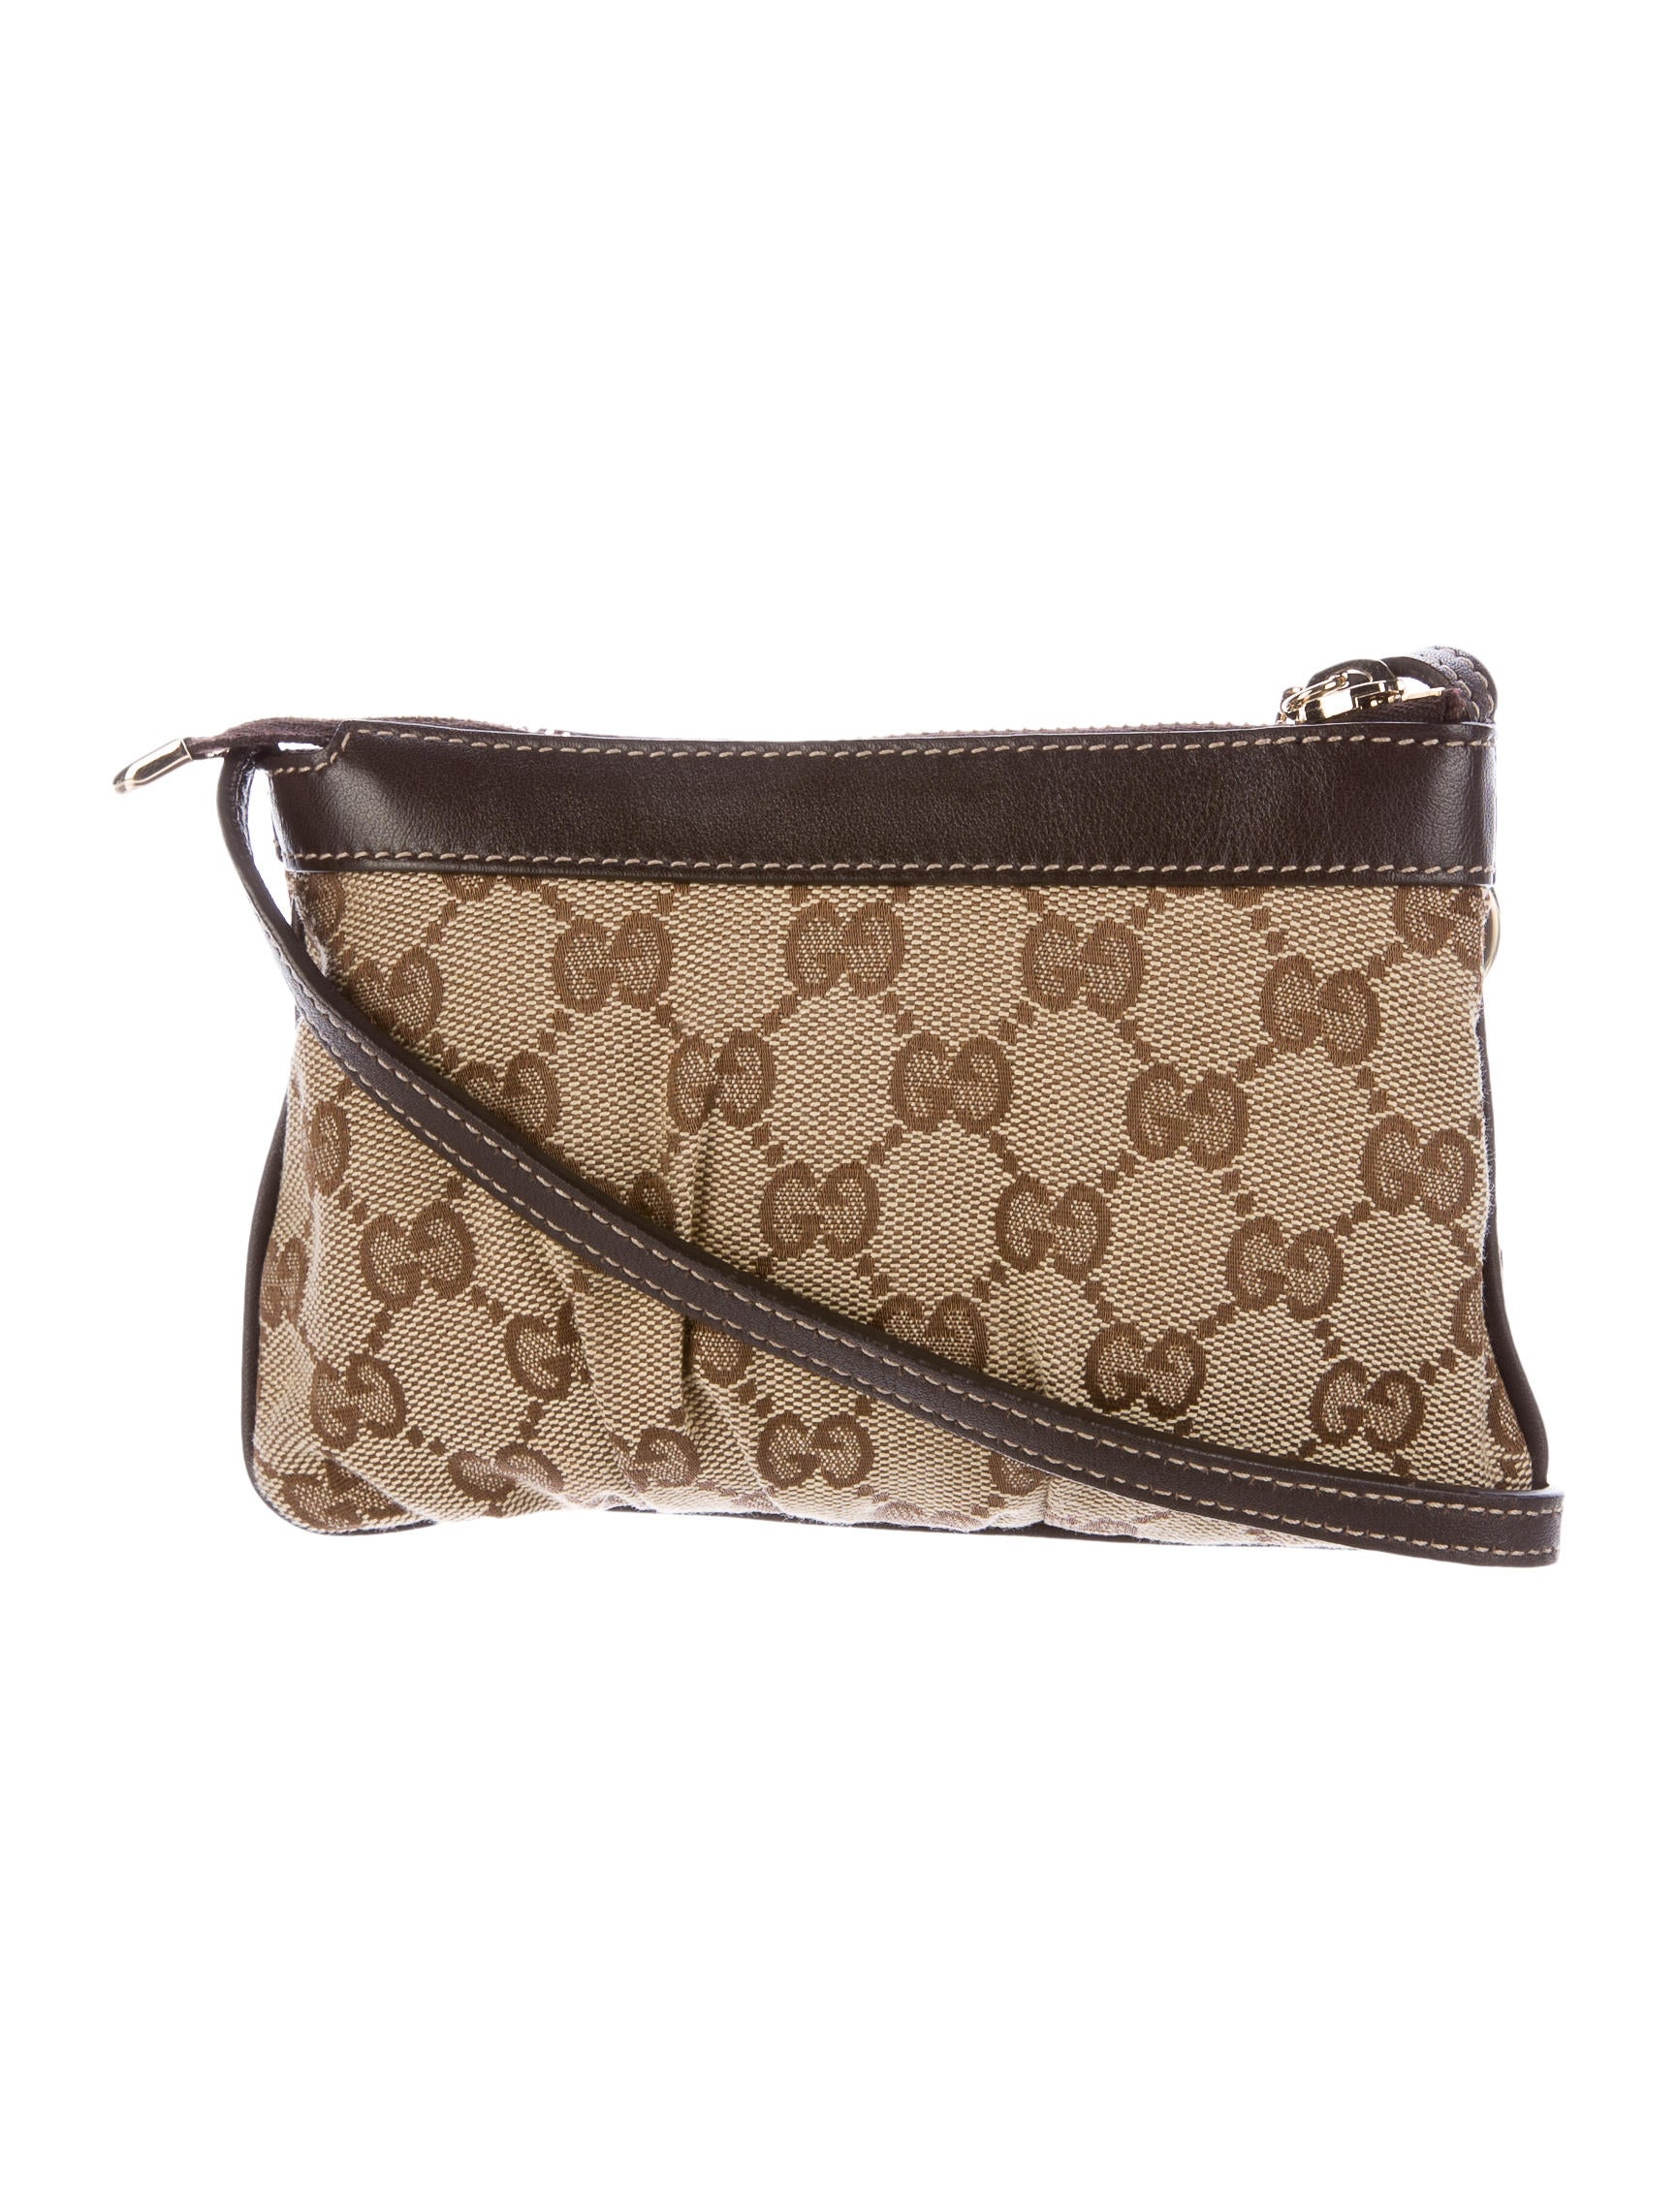 Fantastic This Line Now Includes A Rolling Bag And Leather Laptop Briefcases For Men While Other Companies Are Aiming At This Market, No One Does It With Such A Classic Look, Featuring Designs And Workmanship